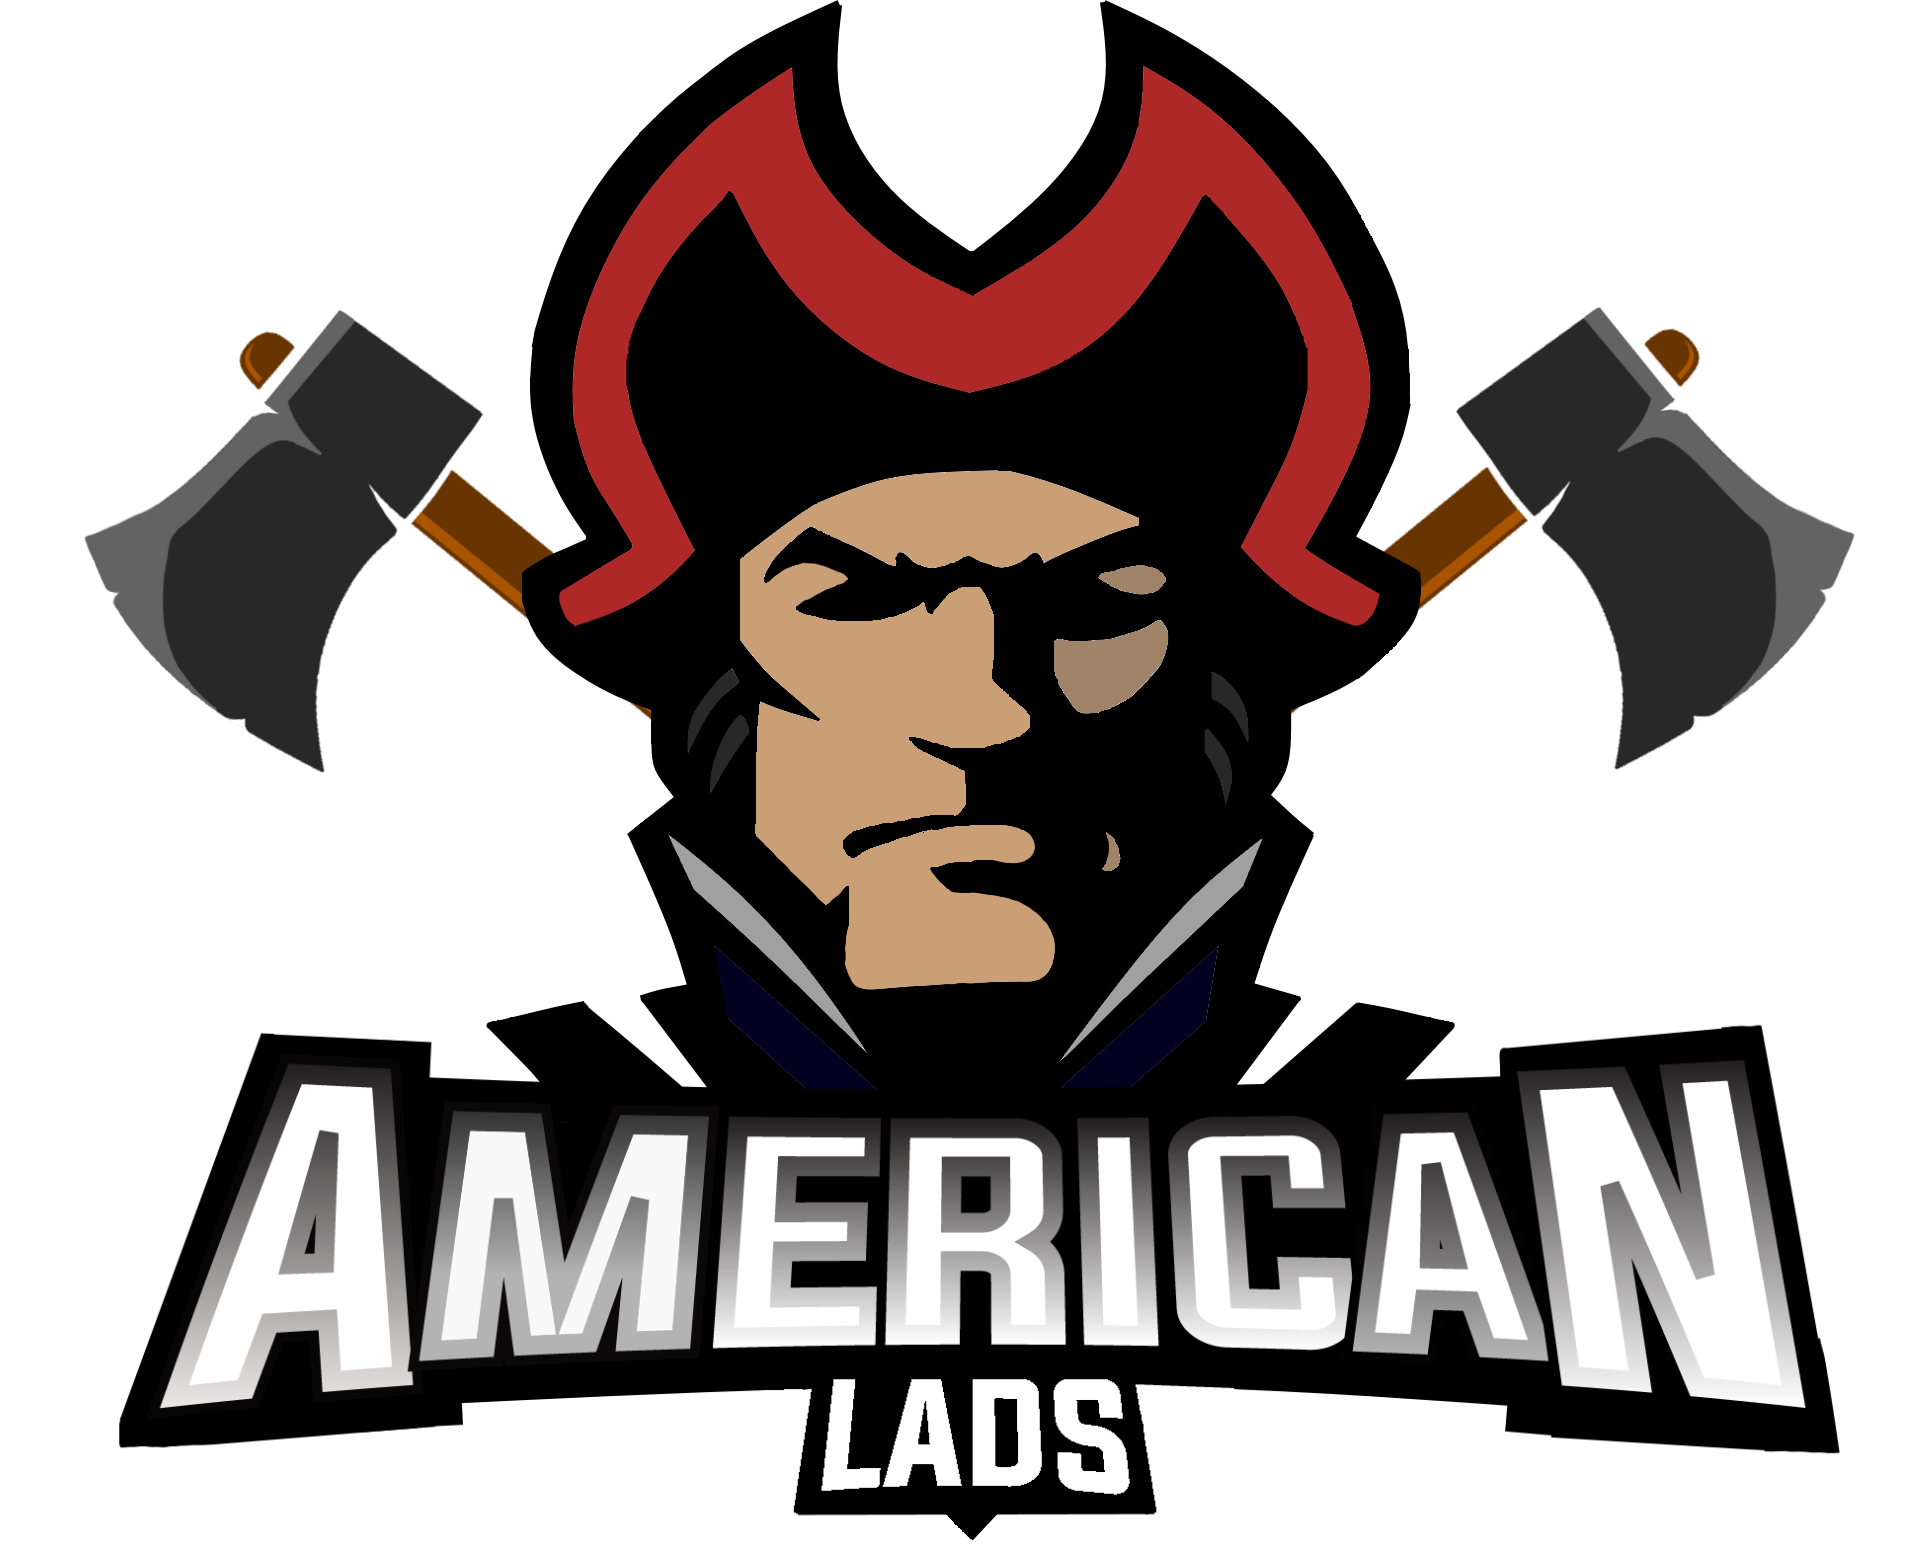 AmericanLads Twitch team avatar